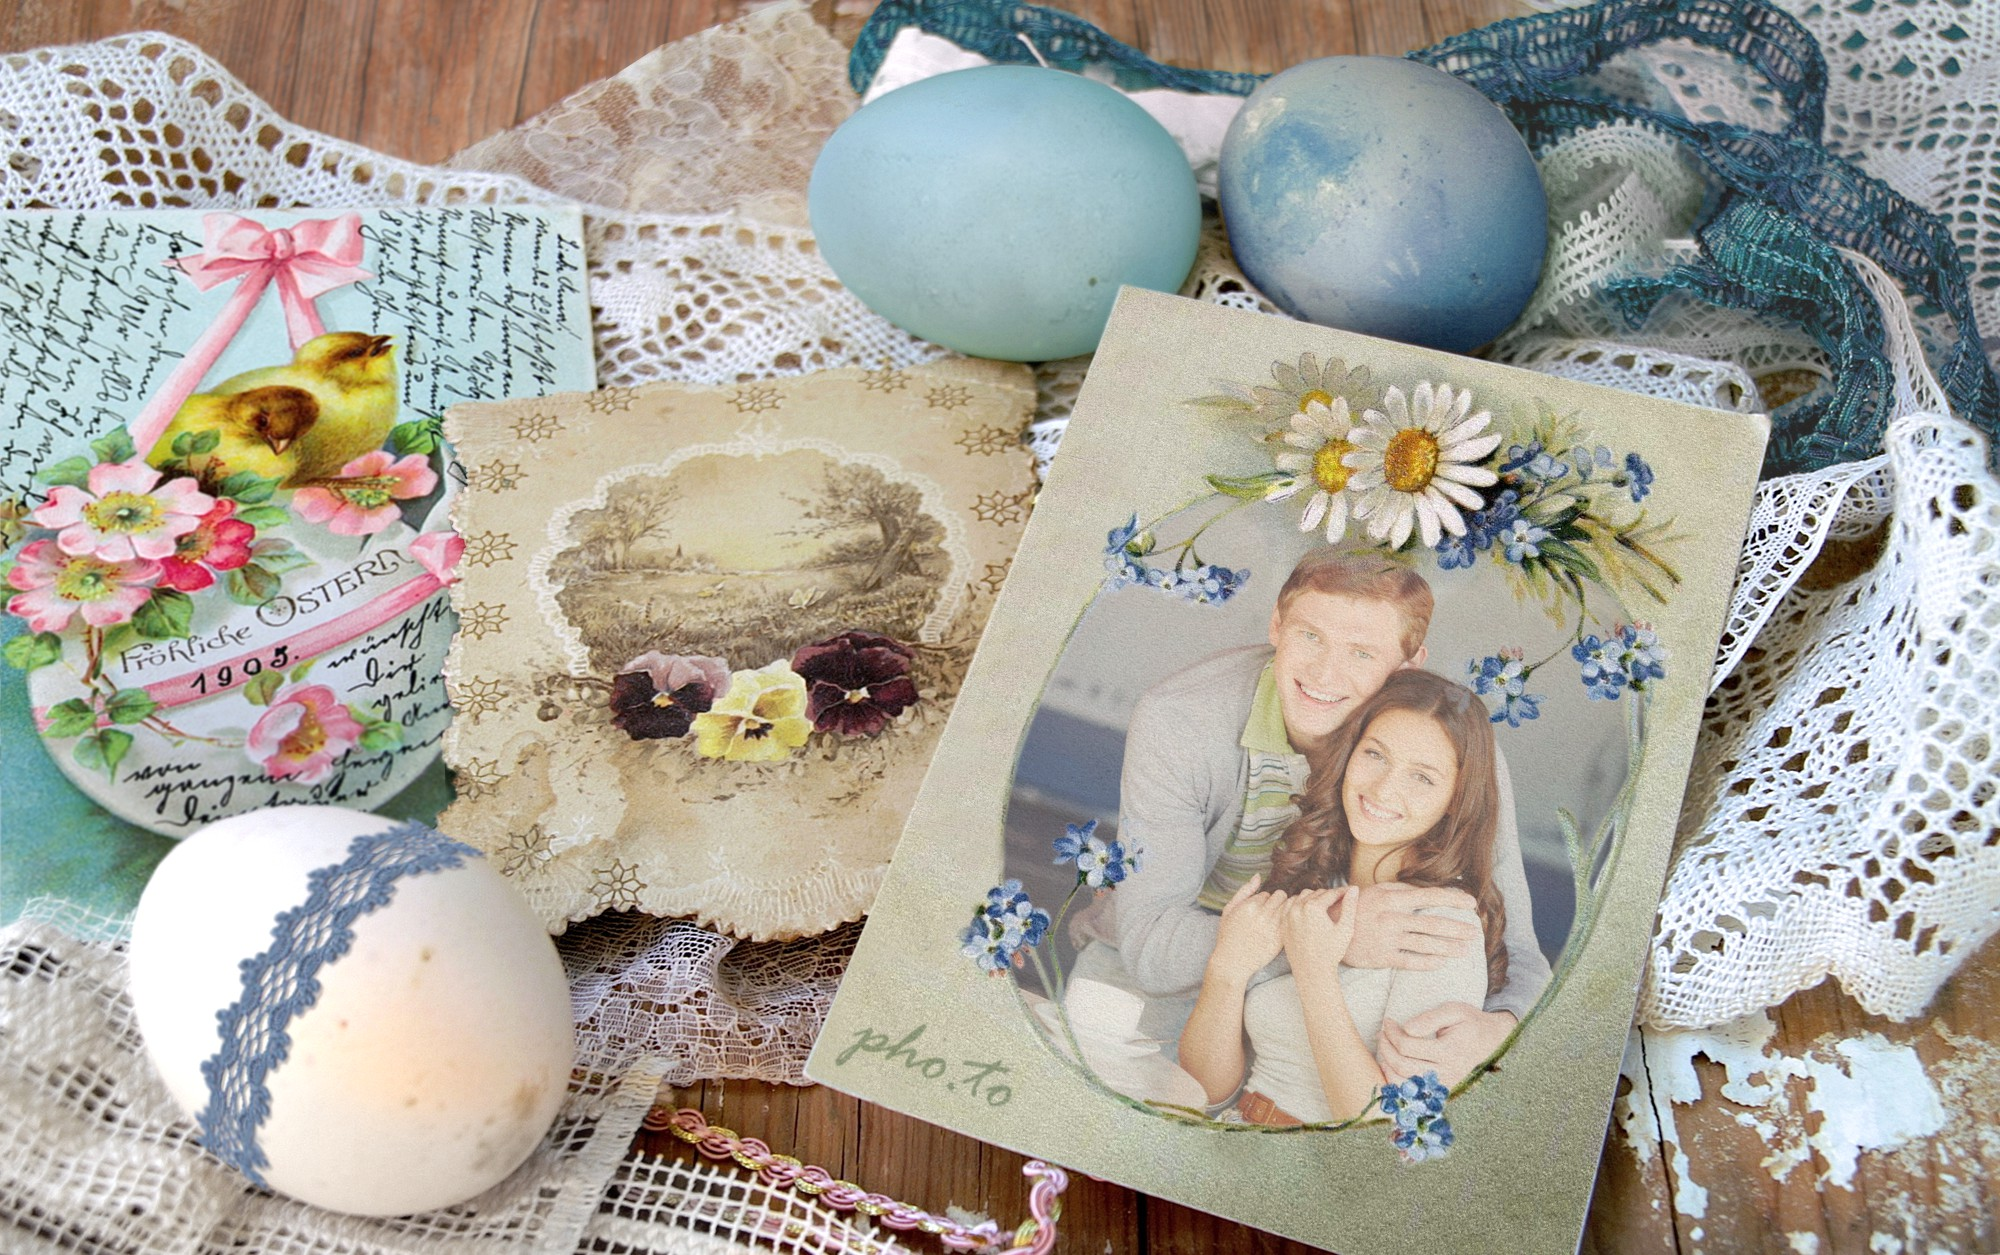 A beautiful Easter scene with a photo of a boy and girl in the centre